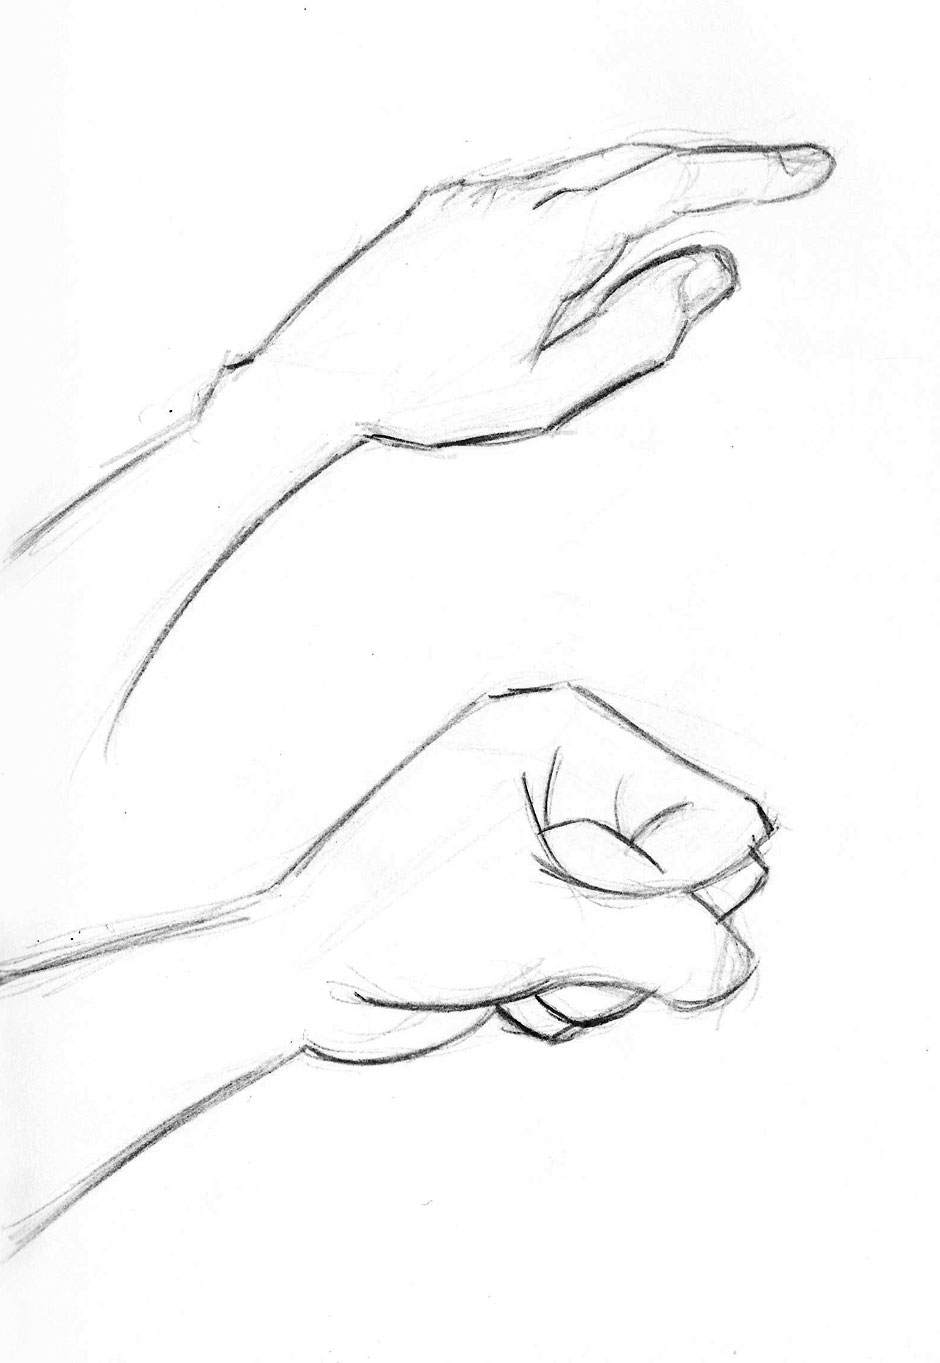 hands-sketches-iamo.jpg